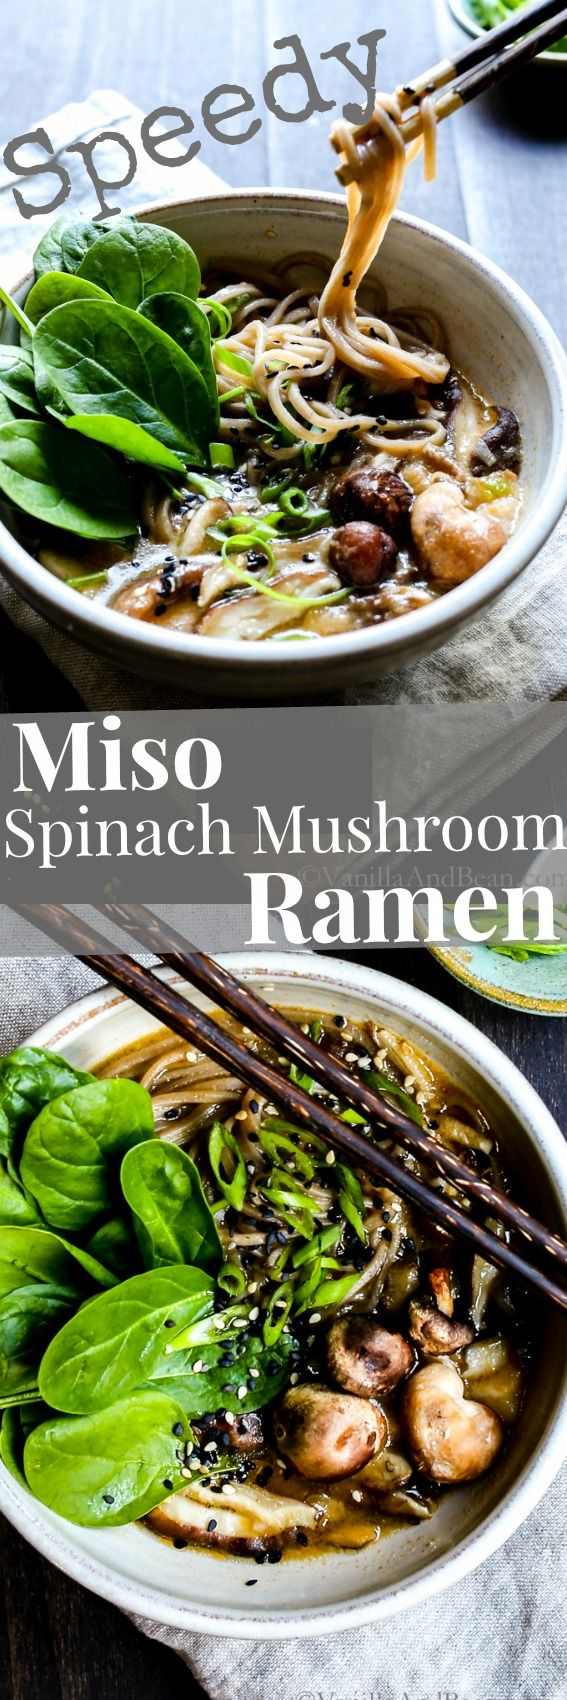 A fast and hearty weeknight dinner. Speedy Miso Spinach Mushroom Ramen is packed with ginger, garlic, shiitake and oodles of soba noodles! Vegan + Optionally GF(Spinach Recipes Spaghetti)